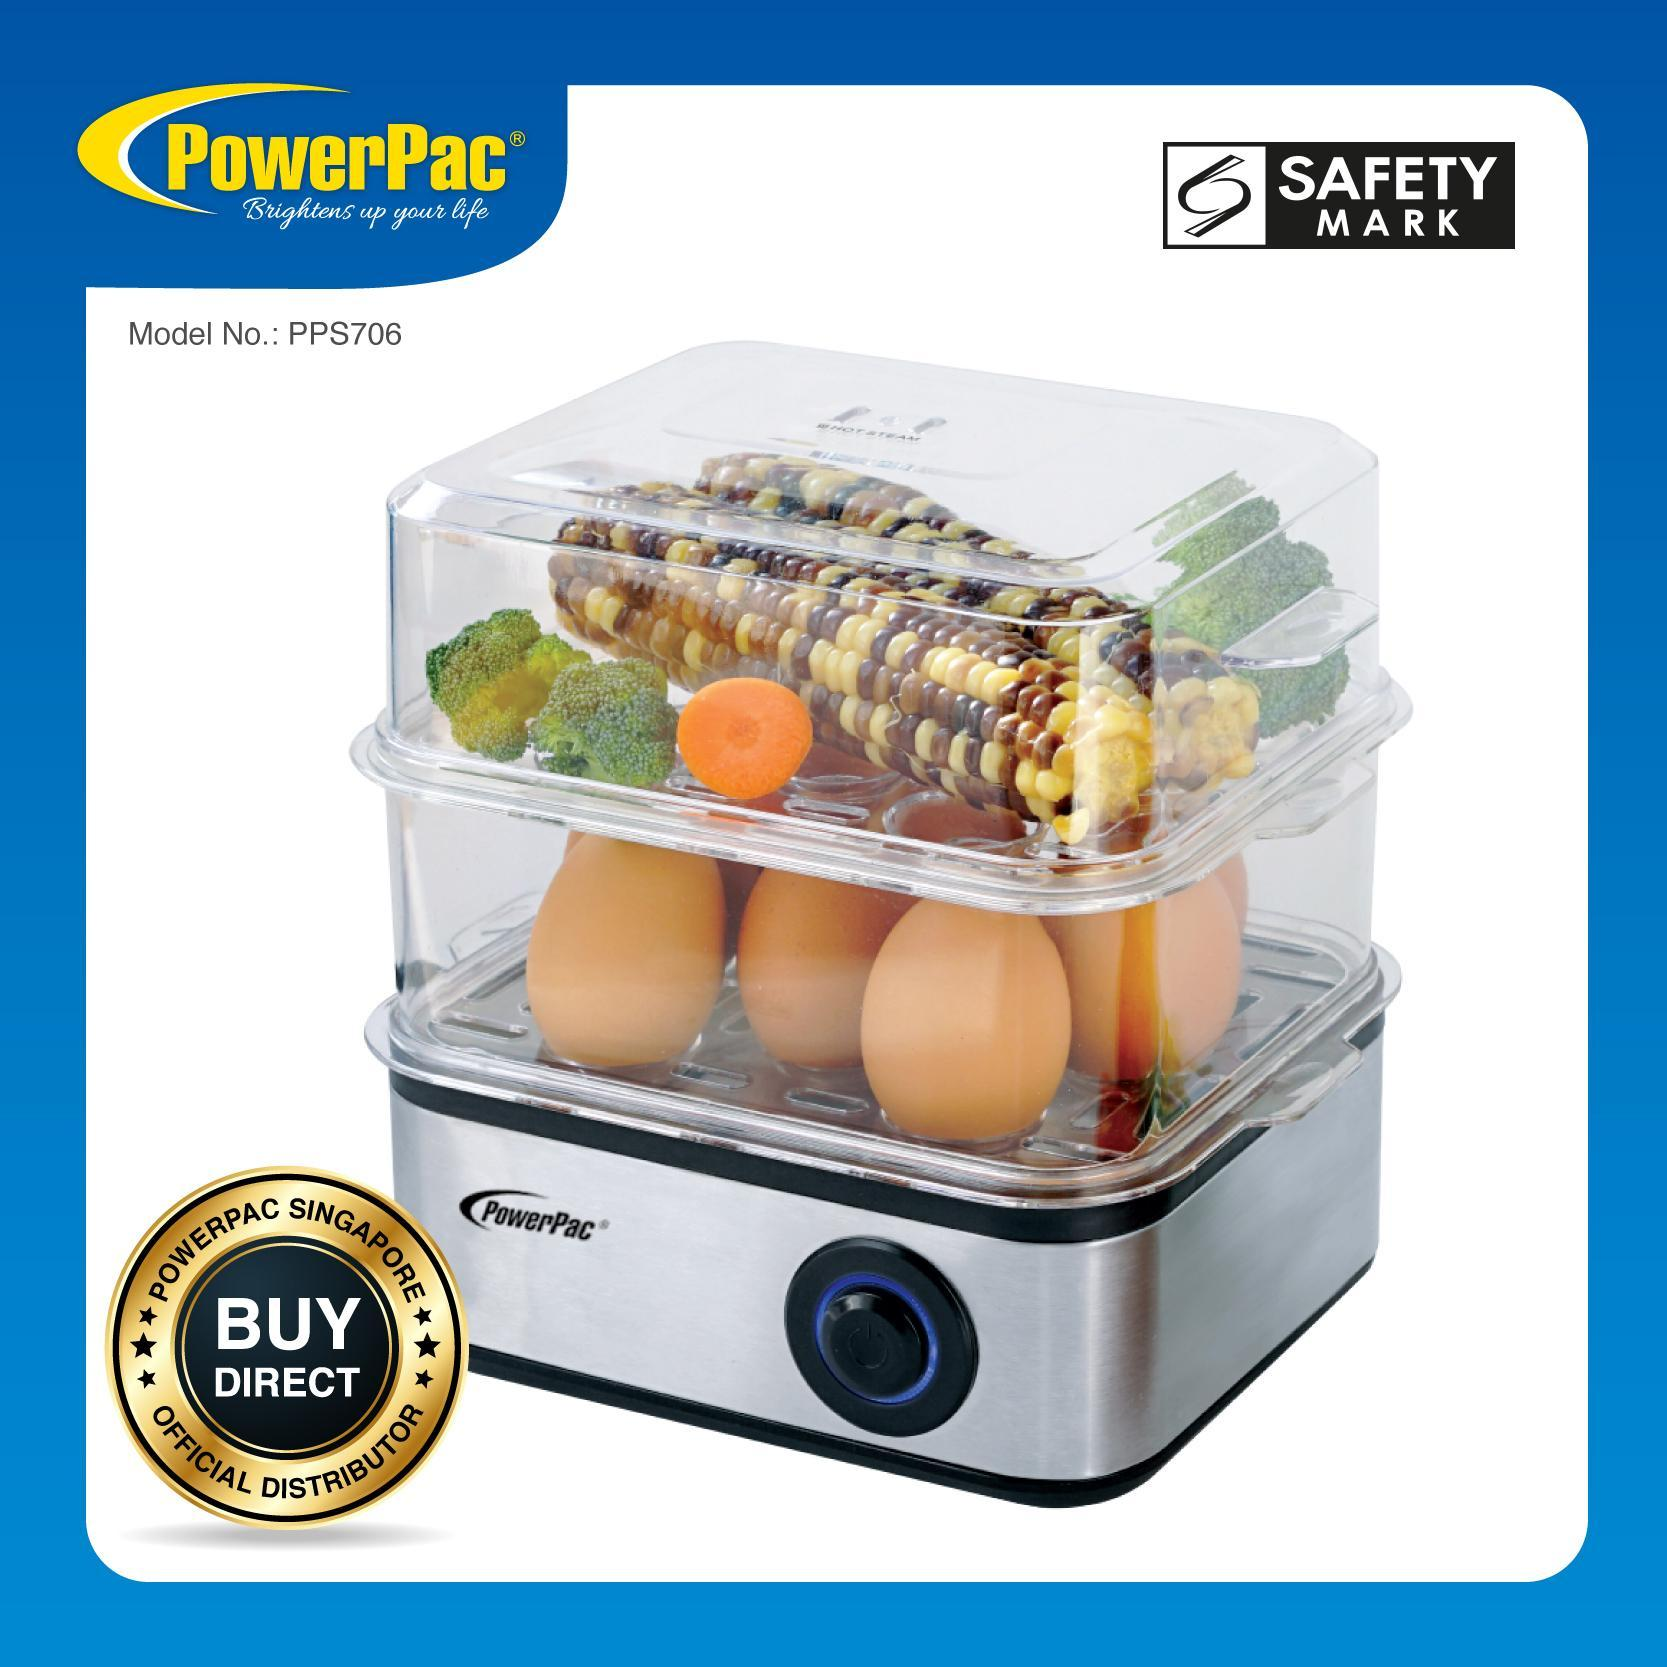 Powerpac 2.5l Multi-Functional 2-Tier Steamer (pps706) By Powerpac.